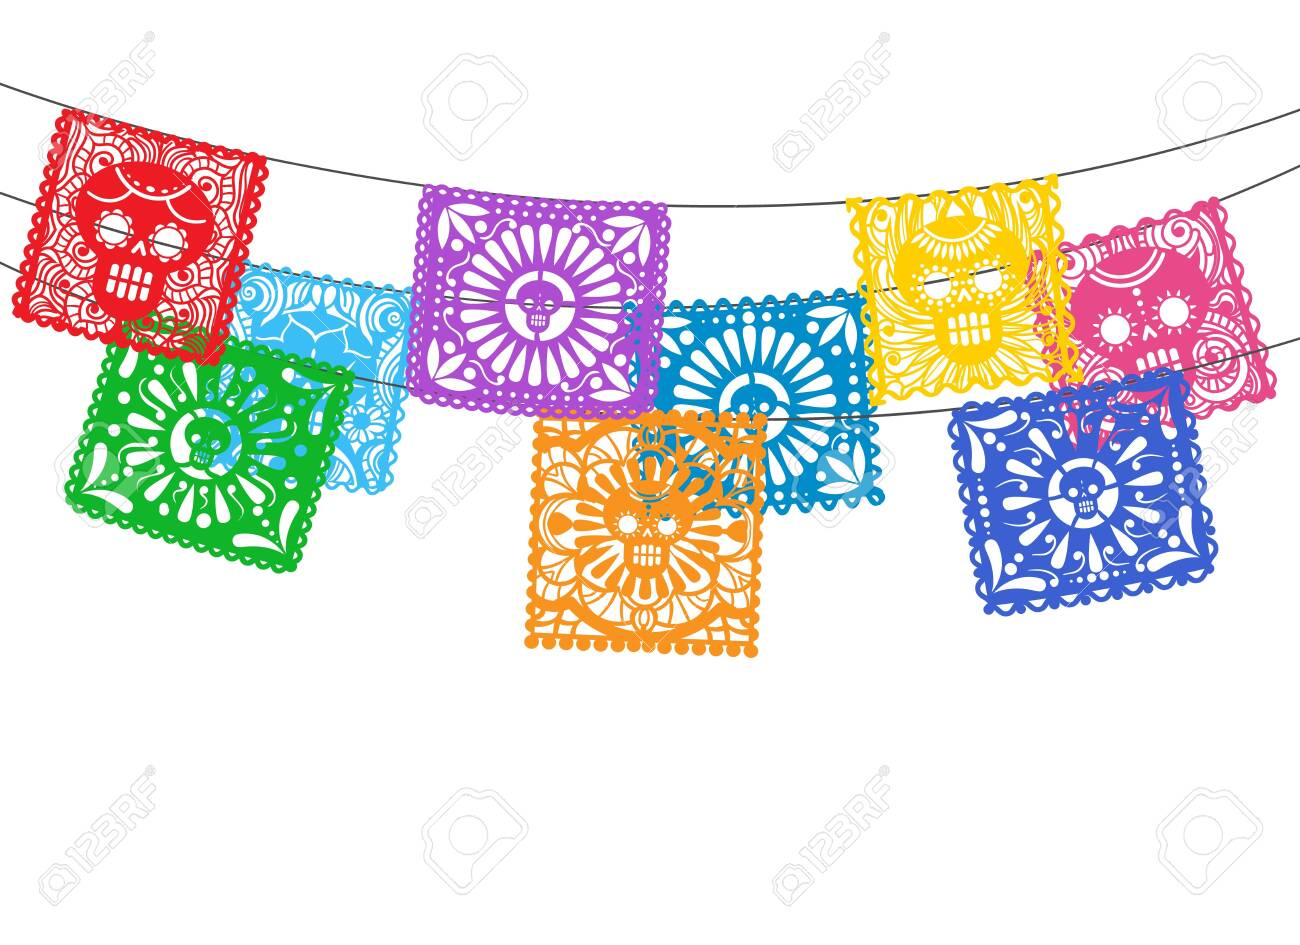 Papel picado. Is mexican day of the death cuting paper flags for street garland buntings, bunting ornamental lines - 156933828